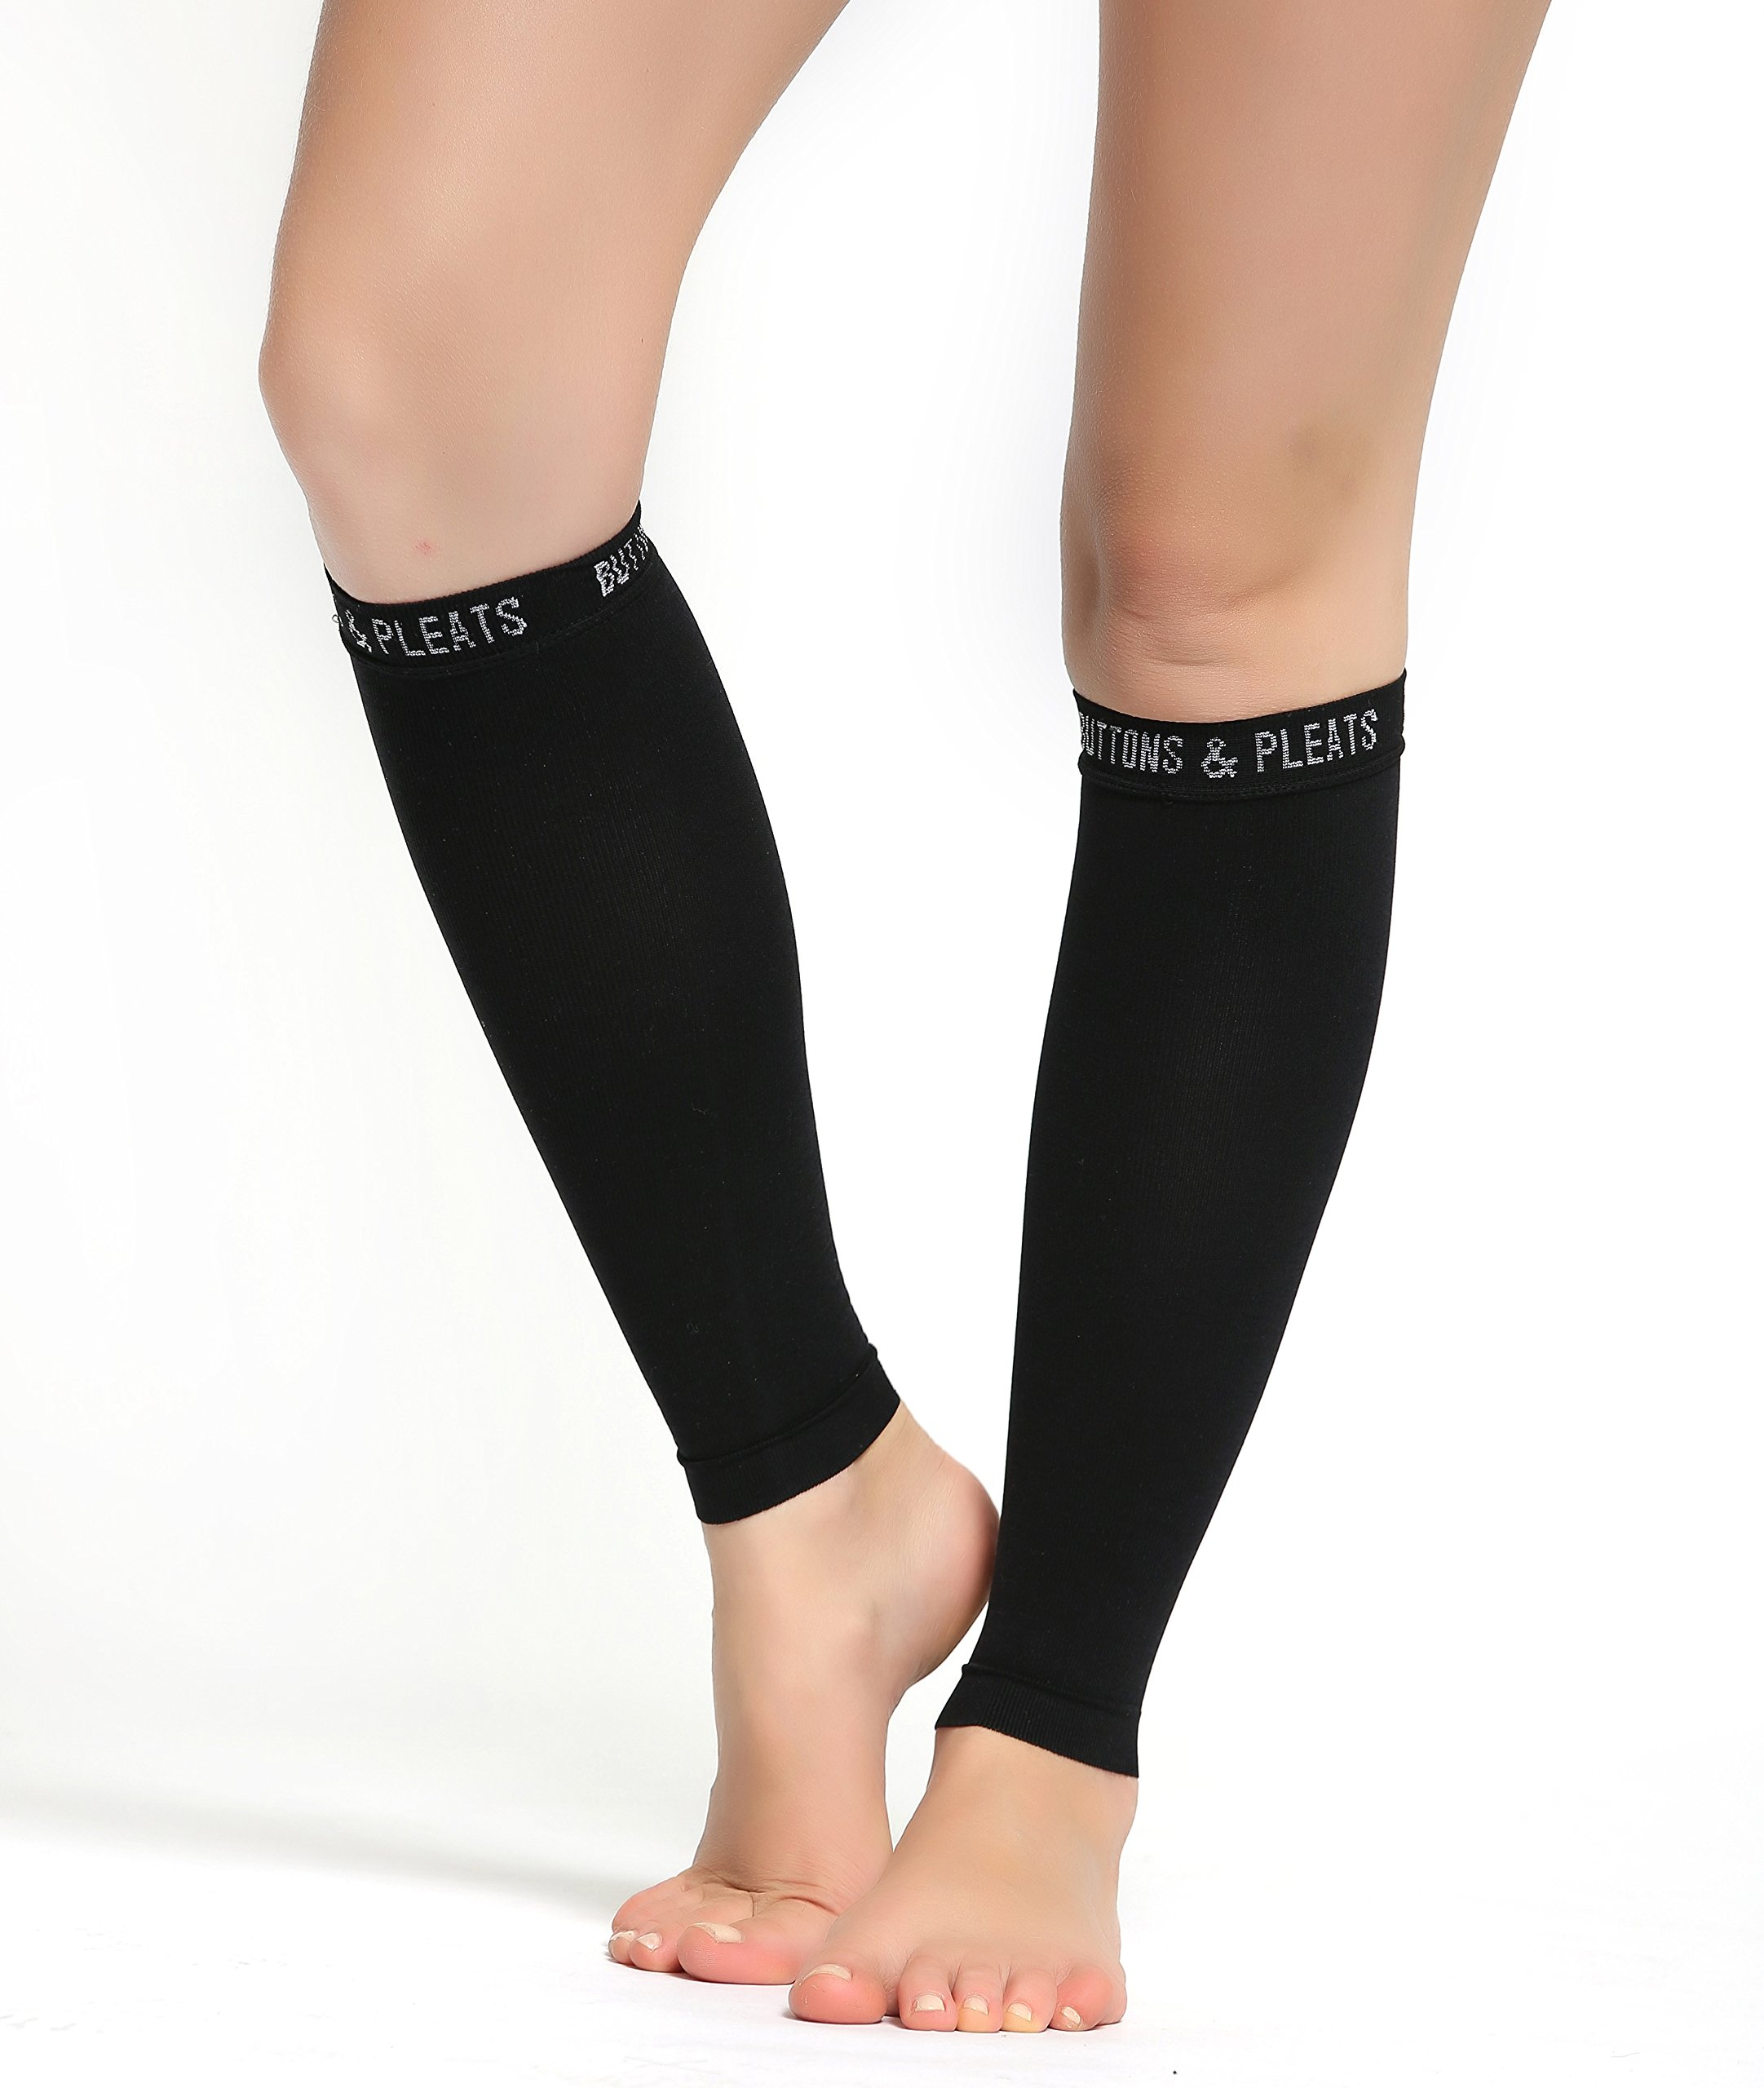 Buttons & Pleats Calf Compression Sleeve for Women & Men - Footless Leg Sleeves Socks - Boosts Circulation - Reduces Fatigue - Eases Shin Splints for Athletes, Runners & Everyday Wear 1 Pair